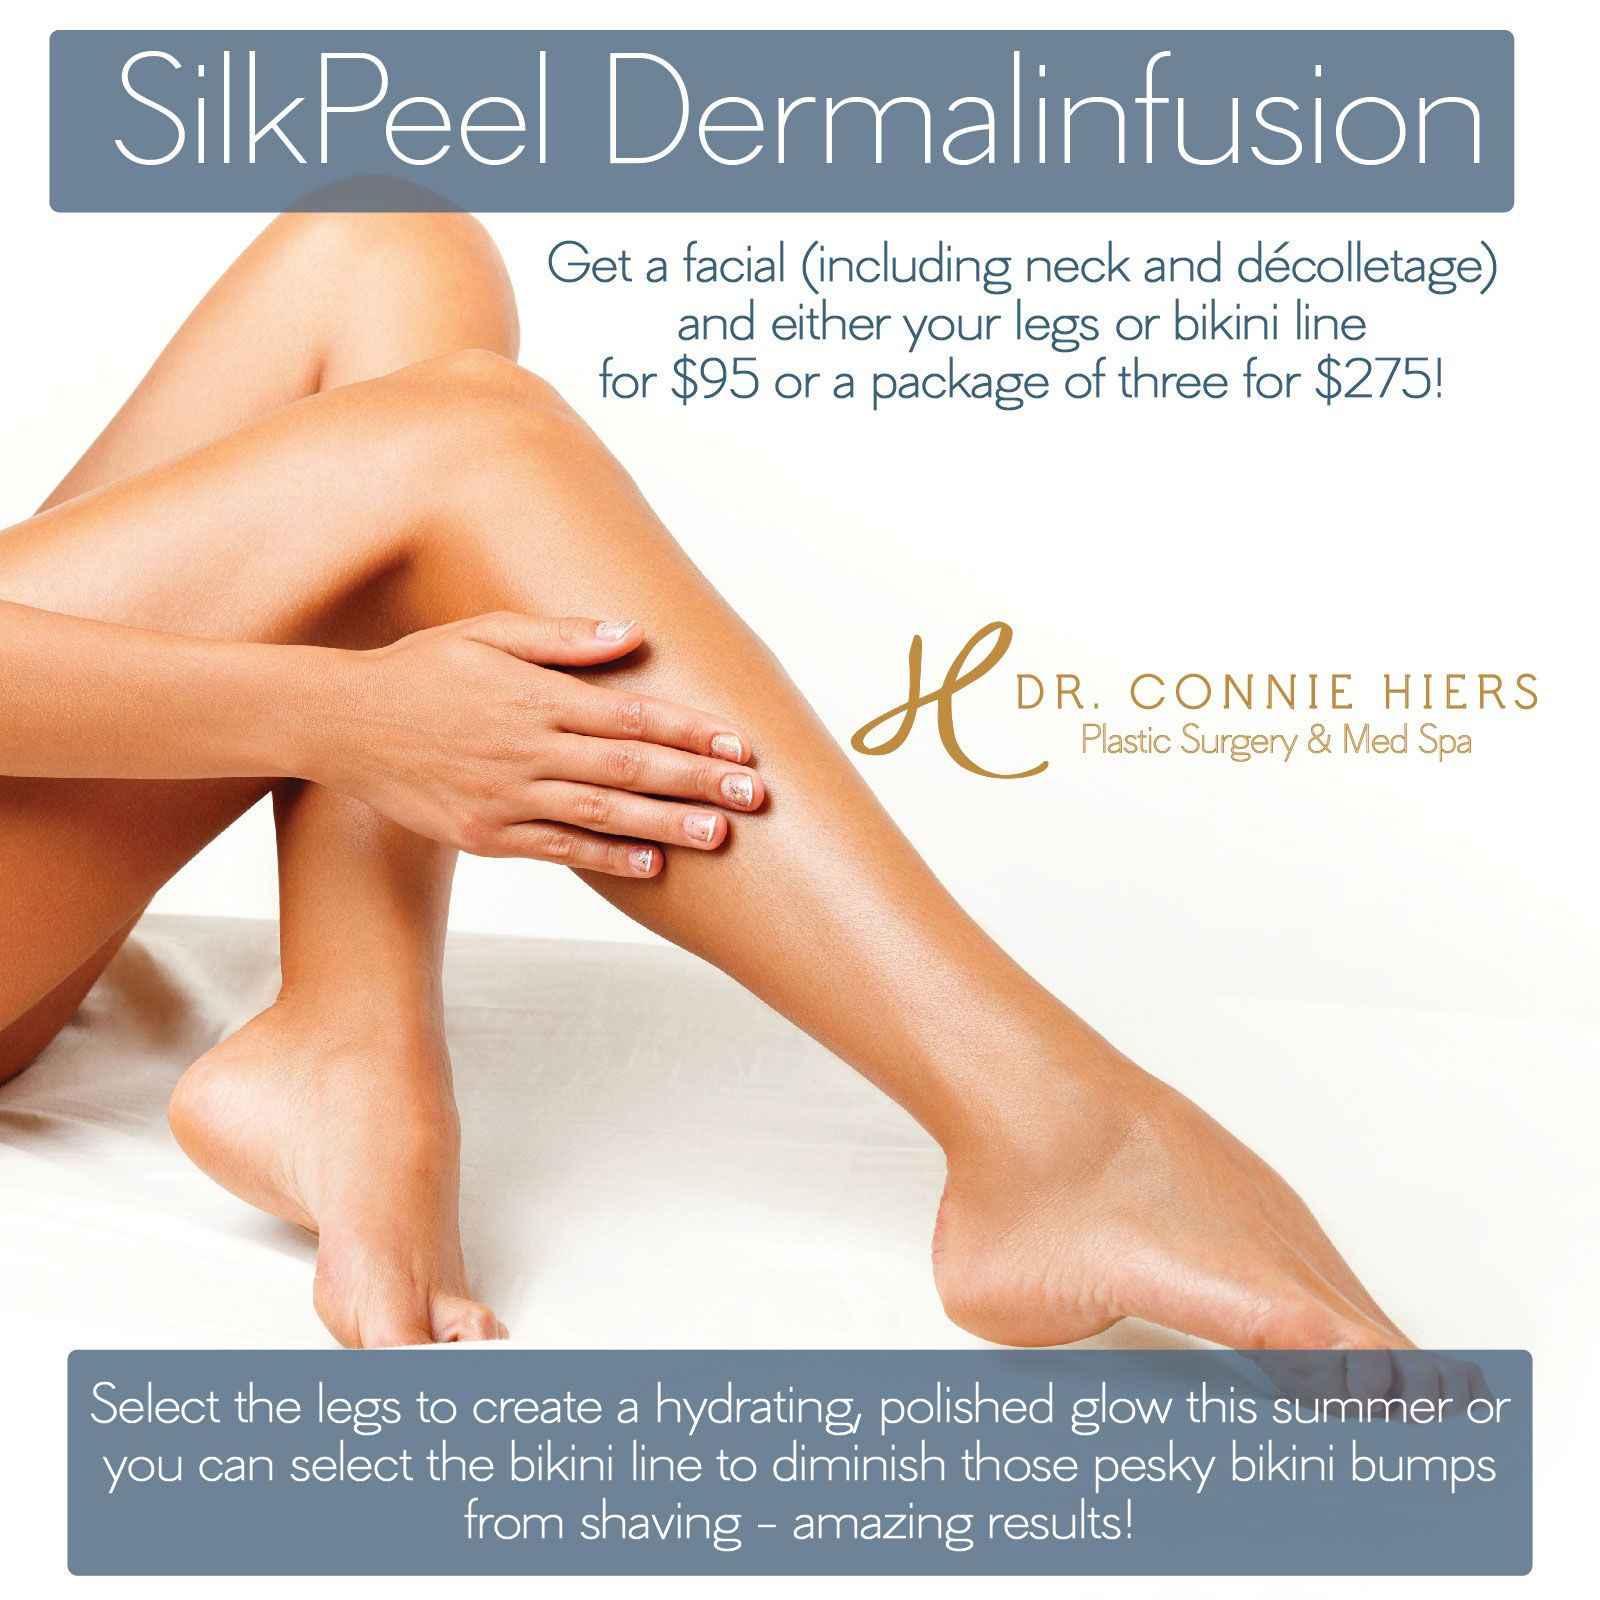 Keep Your Face And Body Beautiful And Glowing Through The Summer With Our Silkpeel Dermalinfusion Combo Call To Schedule Med Spa Plastic Surgery Face And Body